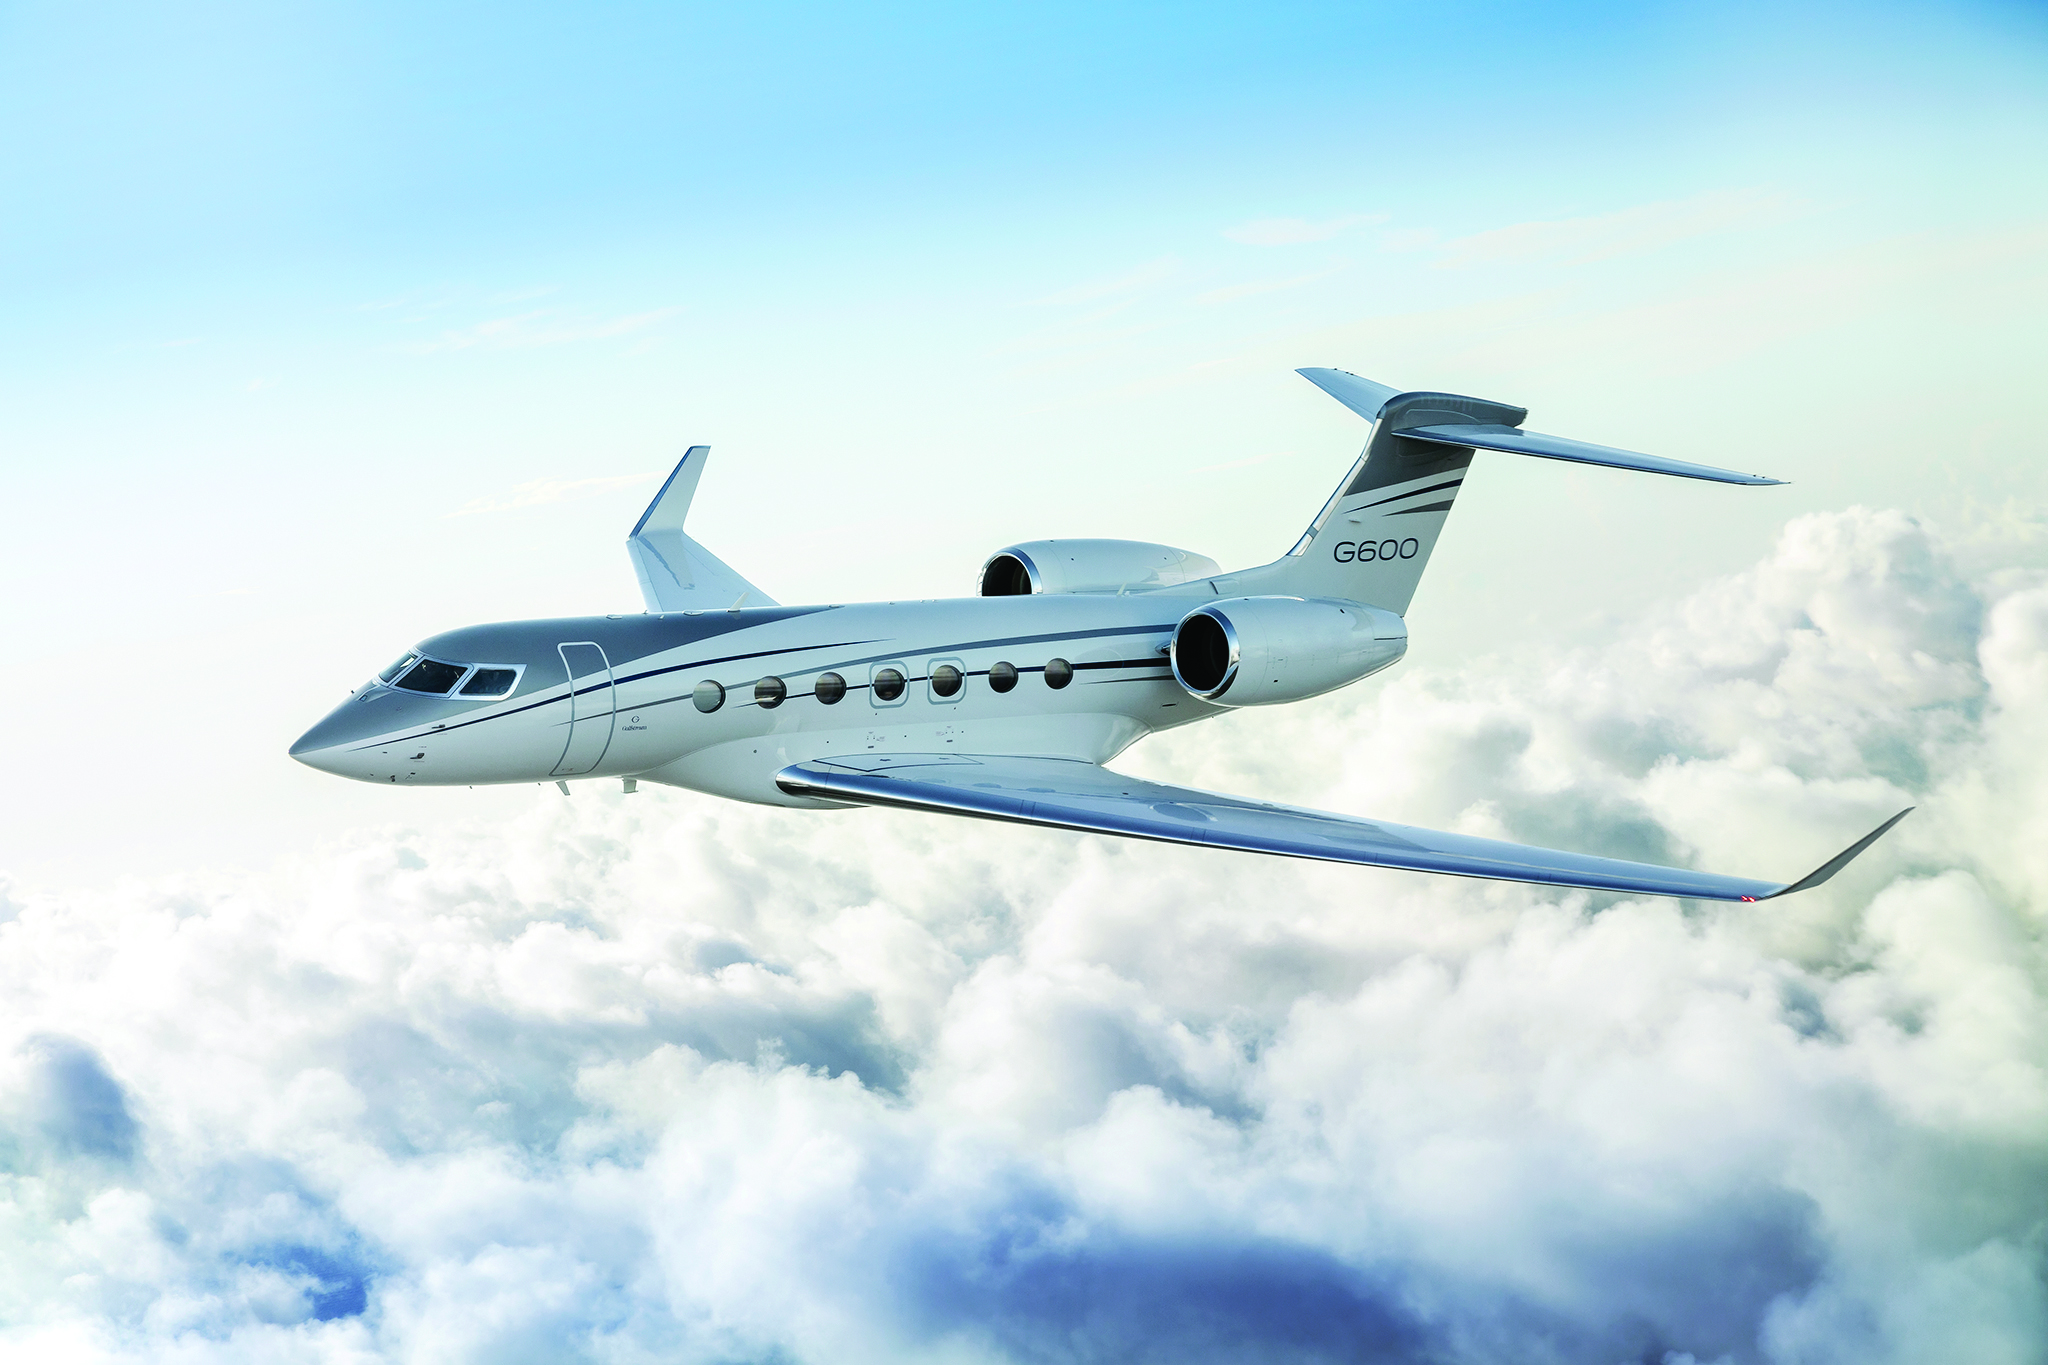 Business and general aviation deliveries holding up despite Covid impact